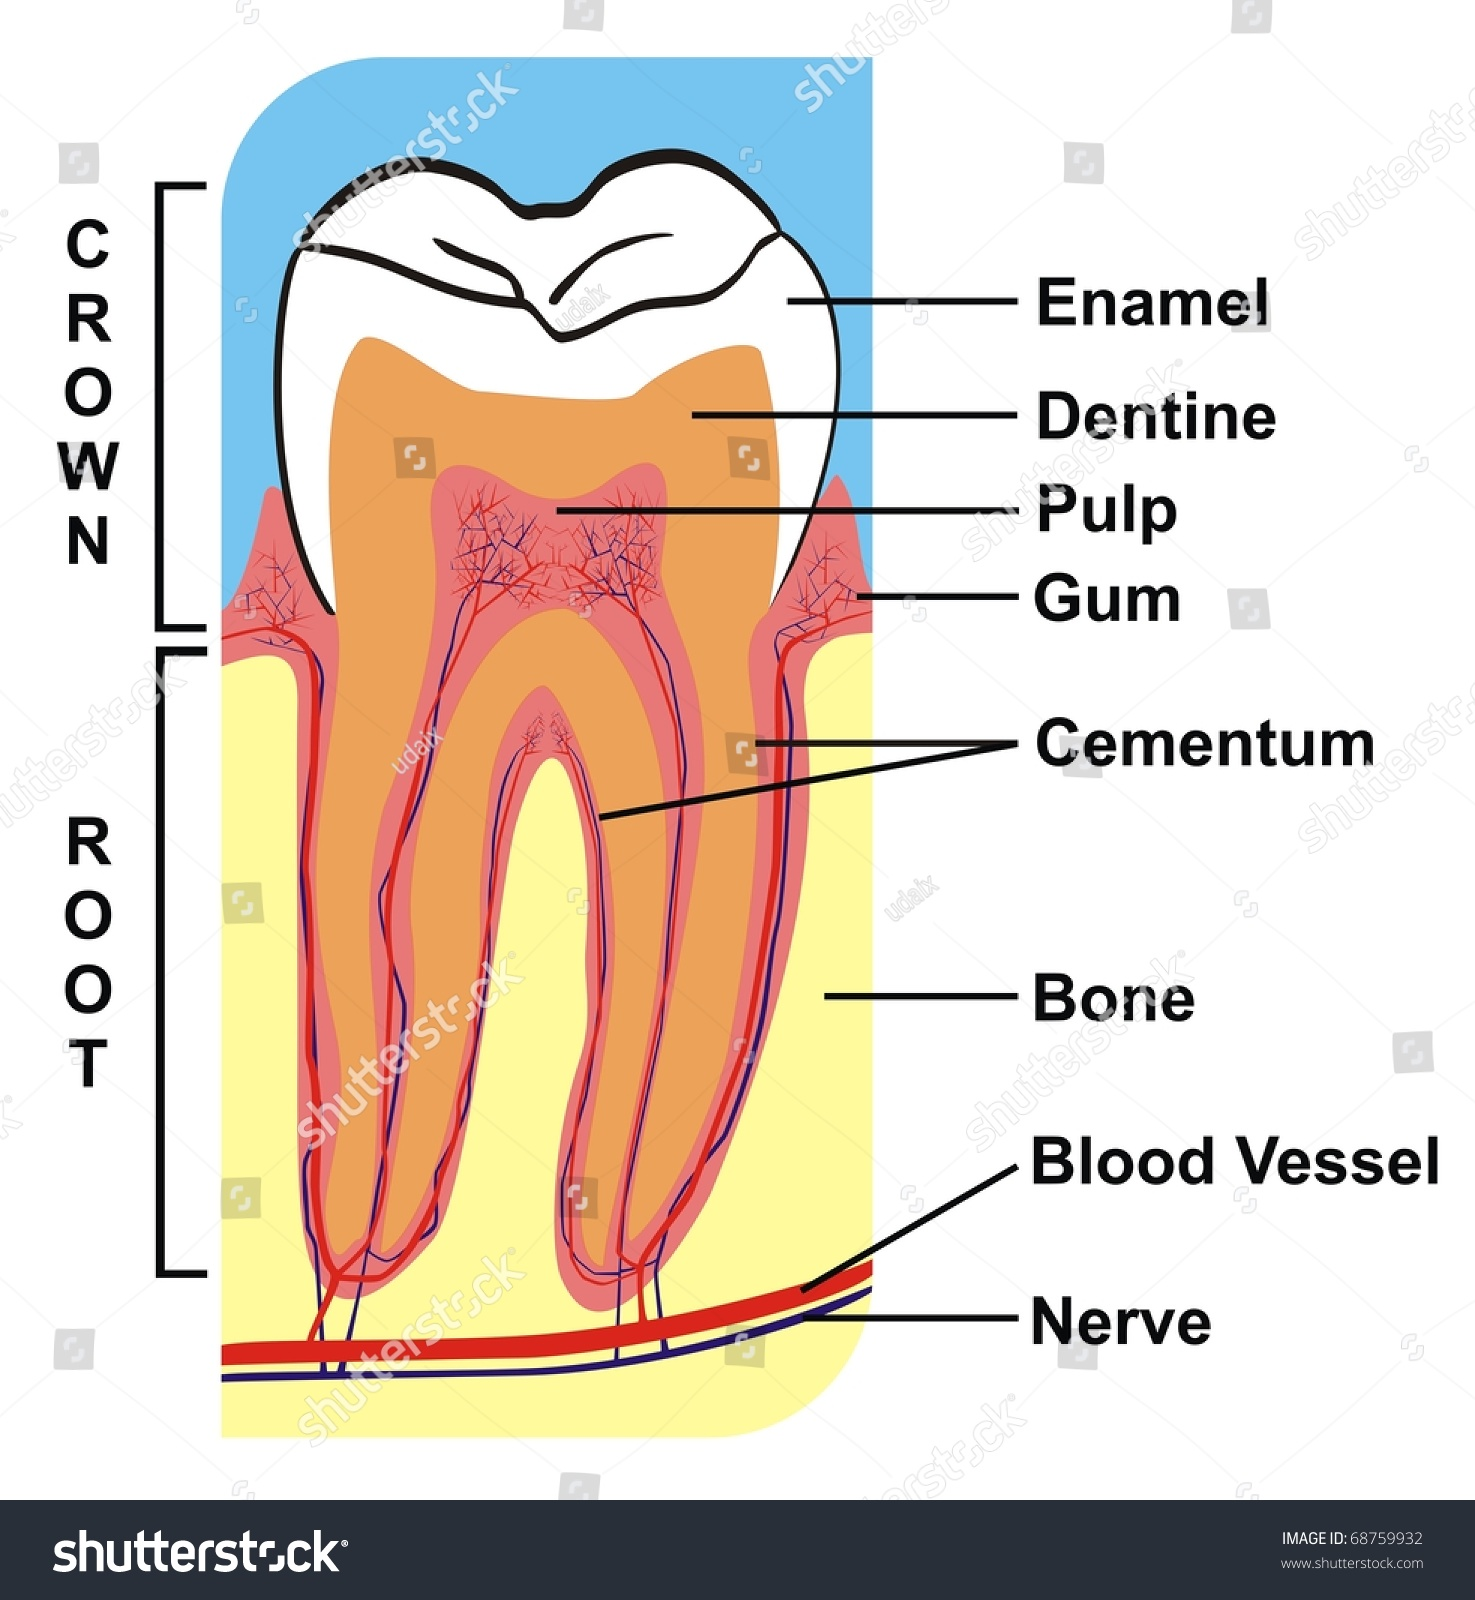 Royalty Free Stock Illustration Of Cross Section Tooth Crown Root